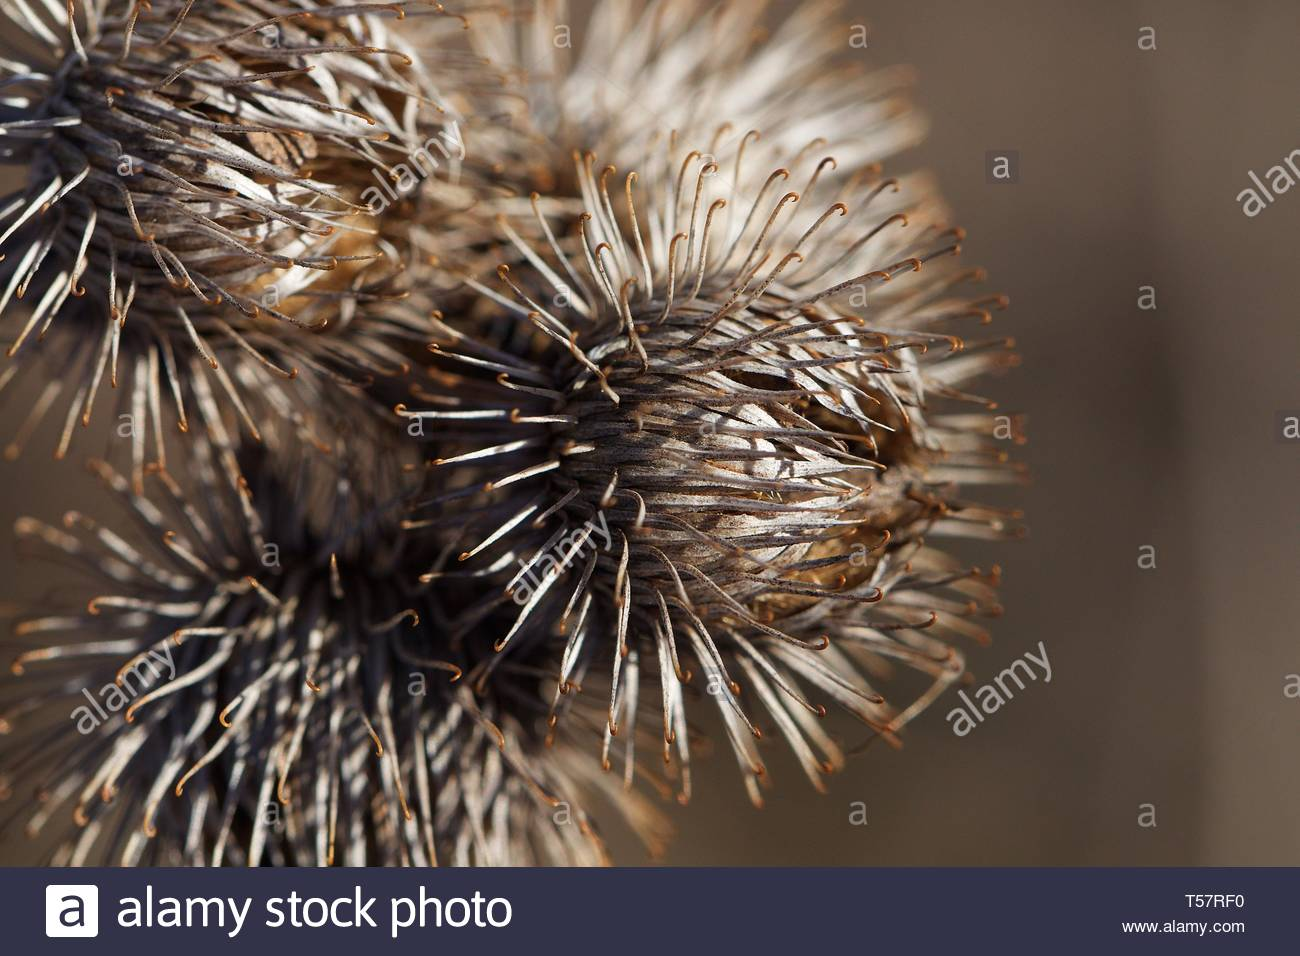 Macro photo of the Arctium (Burdock) plant in early spring. April 2019 - Stock Image